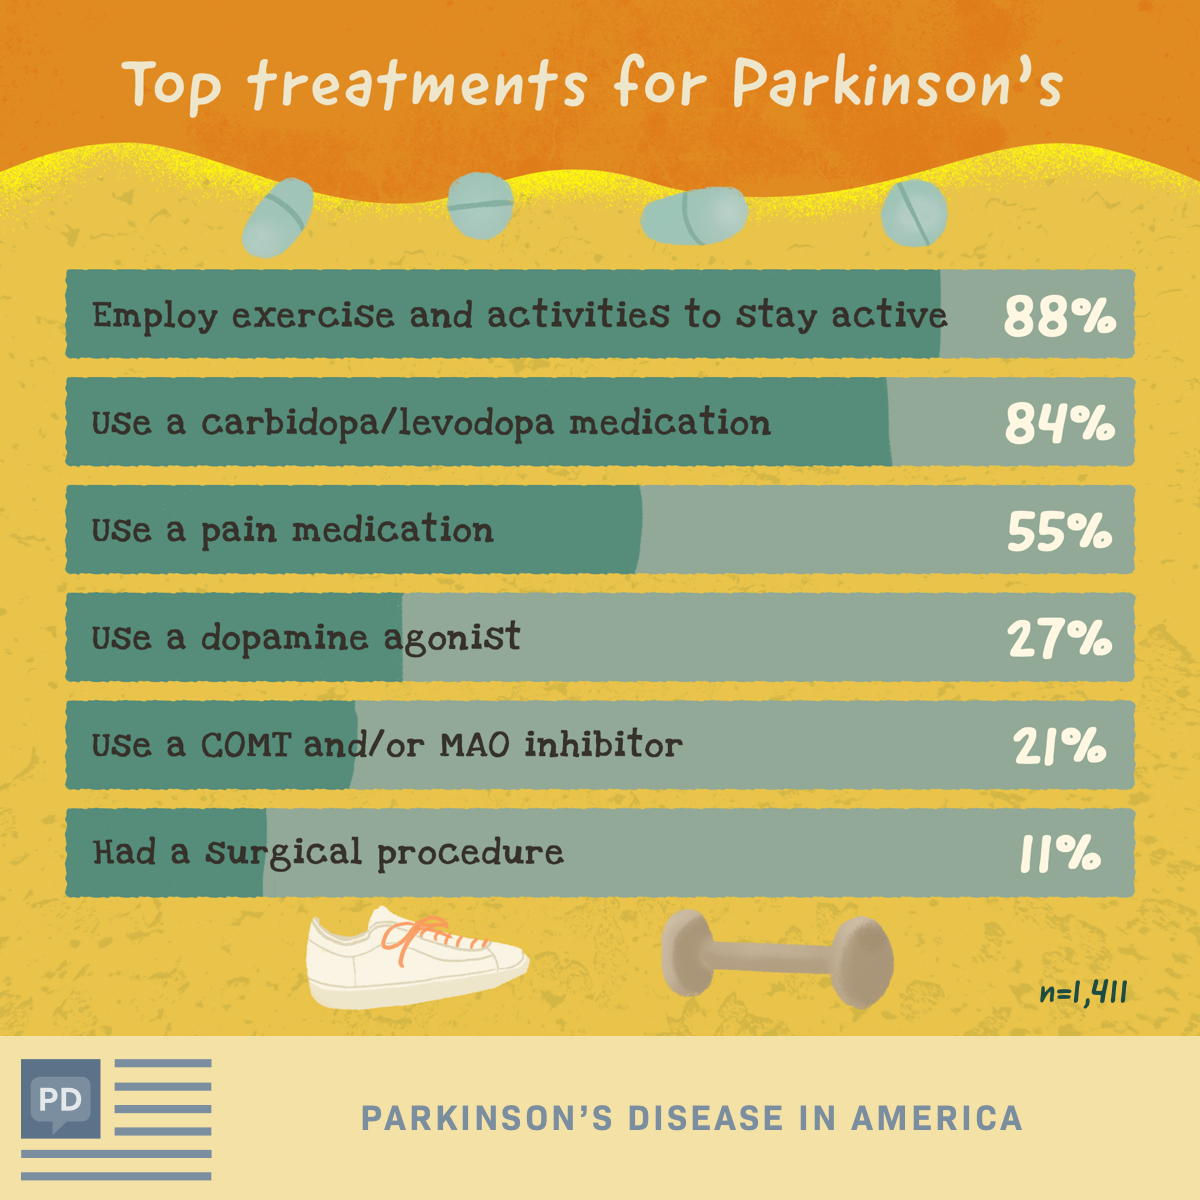 Top treatment options for Parkinson's disease patients